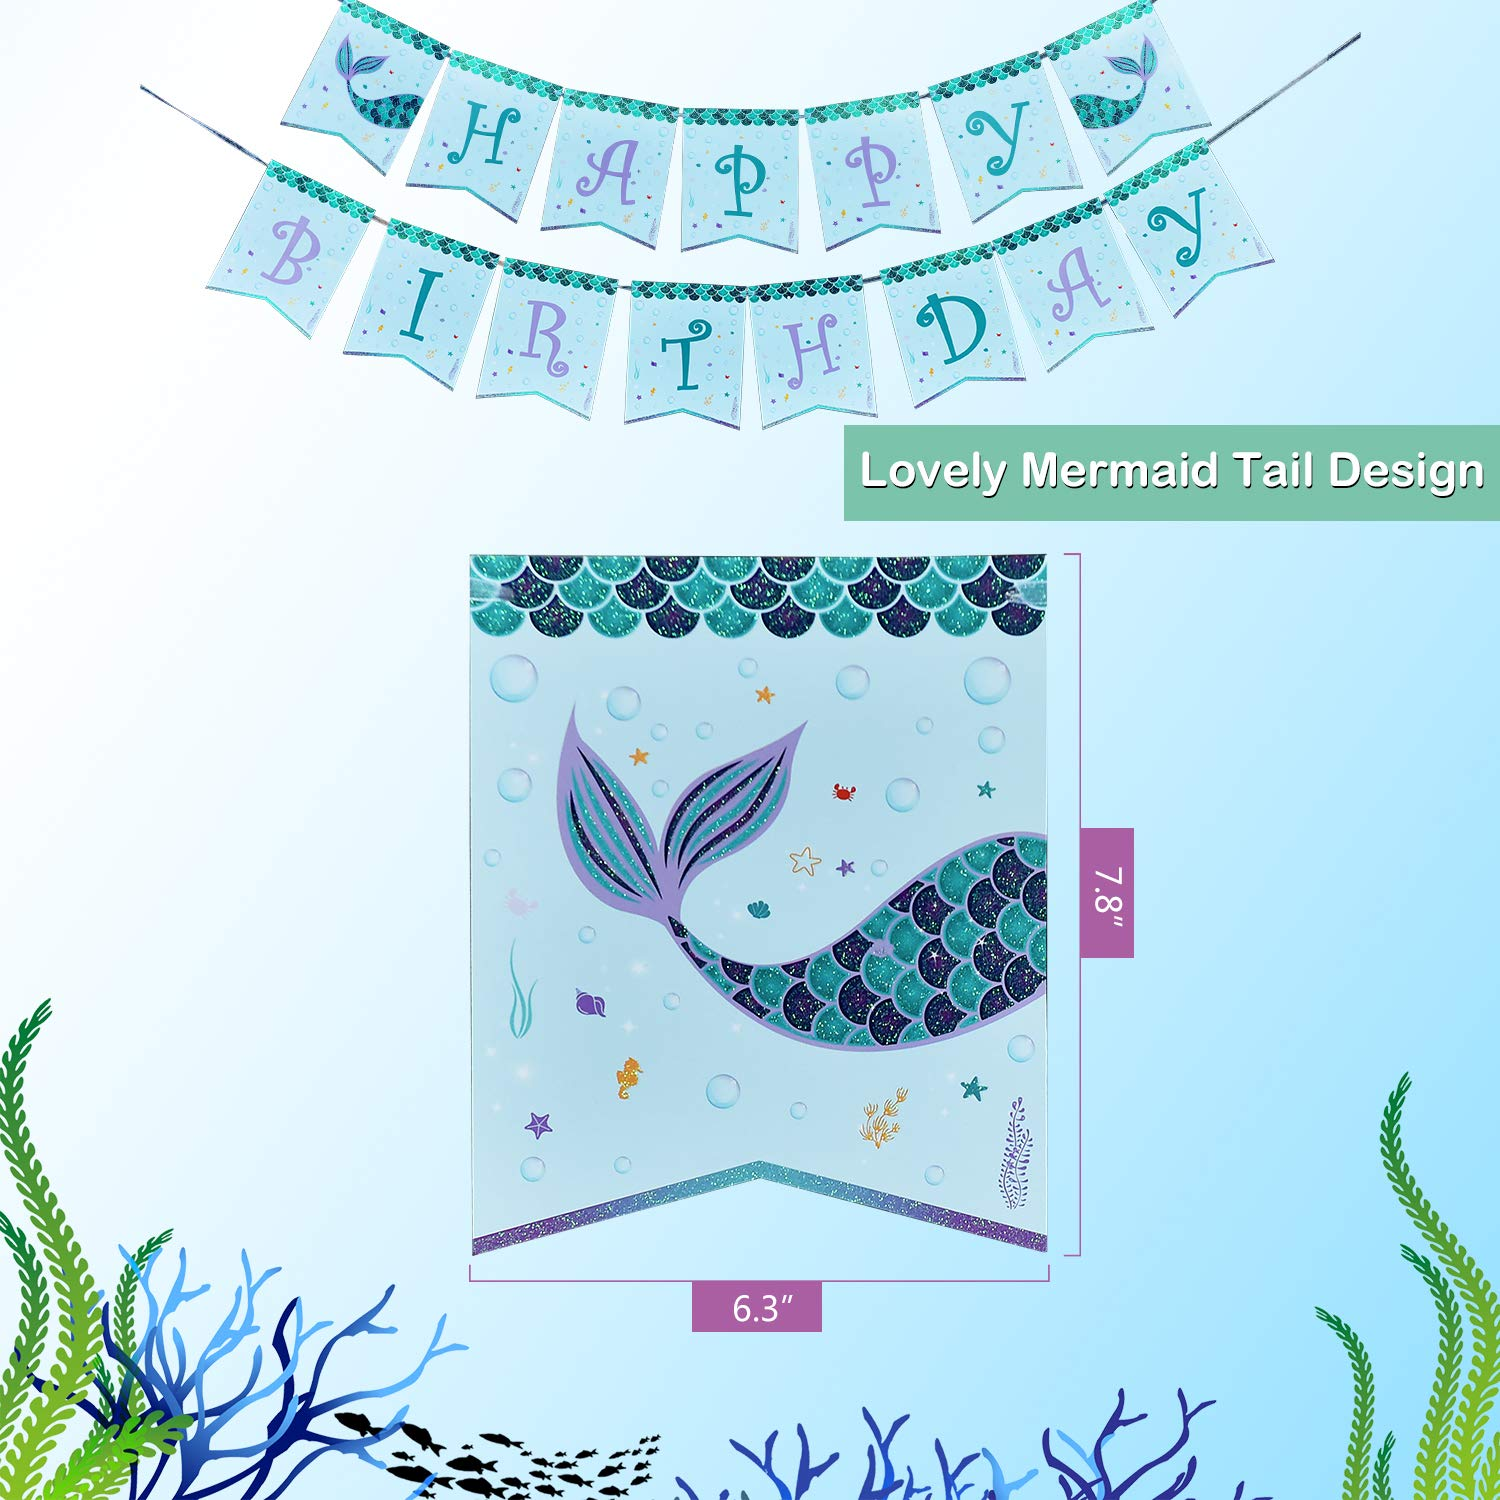 WERNNSAI Pool Mermaid Party Supplies Kit - Party Favors Girls Birthday Party Decoration Cutlery Bag Table Cover Plates Cups Napkins Straws Utensils Birthday Banner & Balloons Serves 16 Guests 169 PCS by WERNNSAI (Image #3)